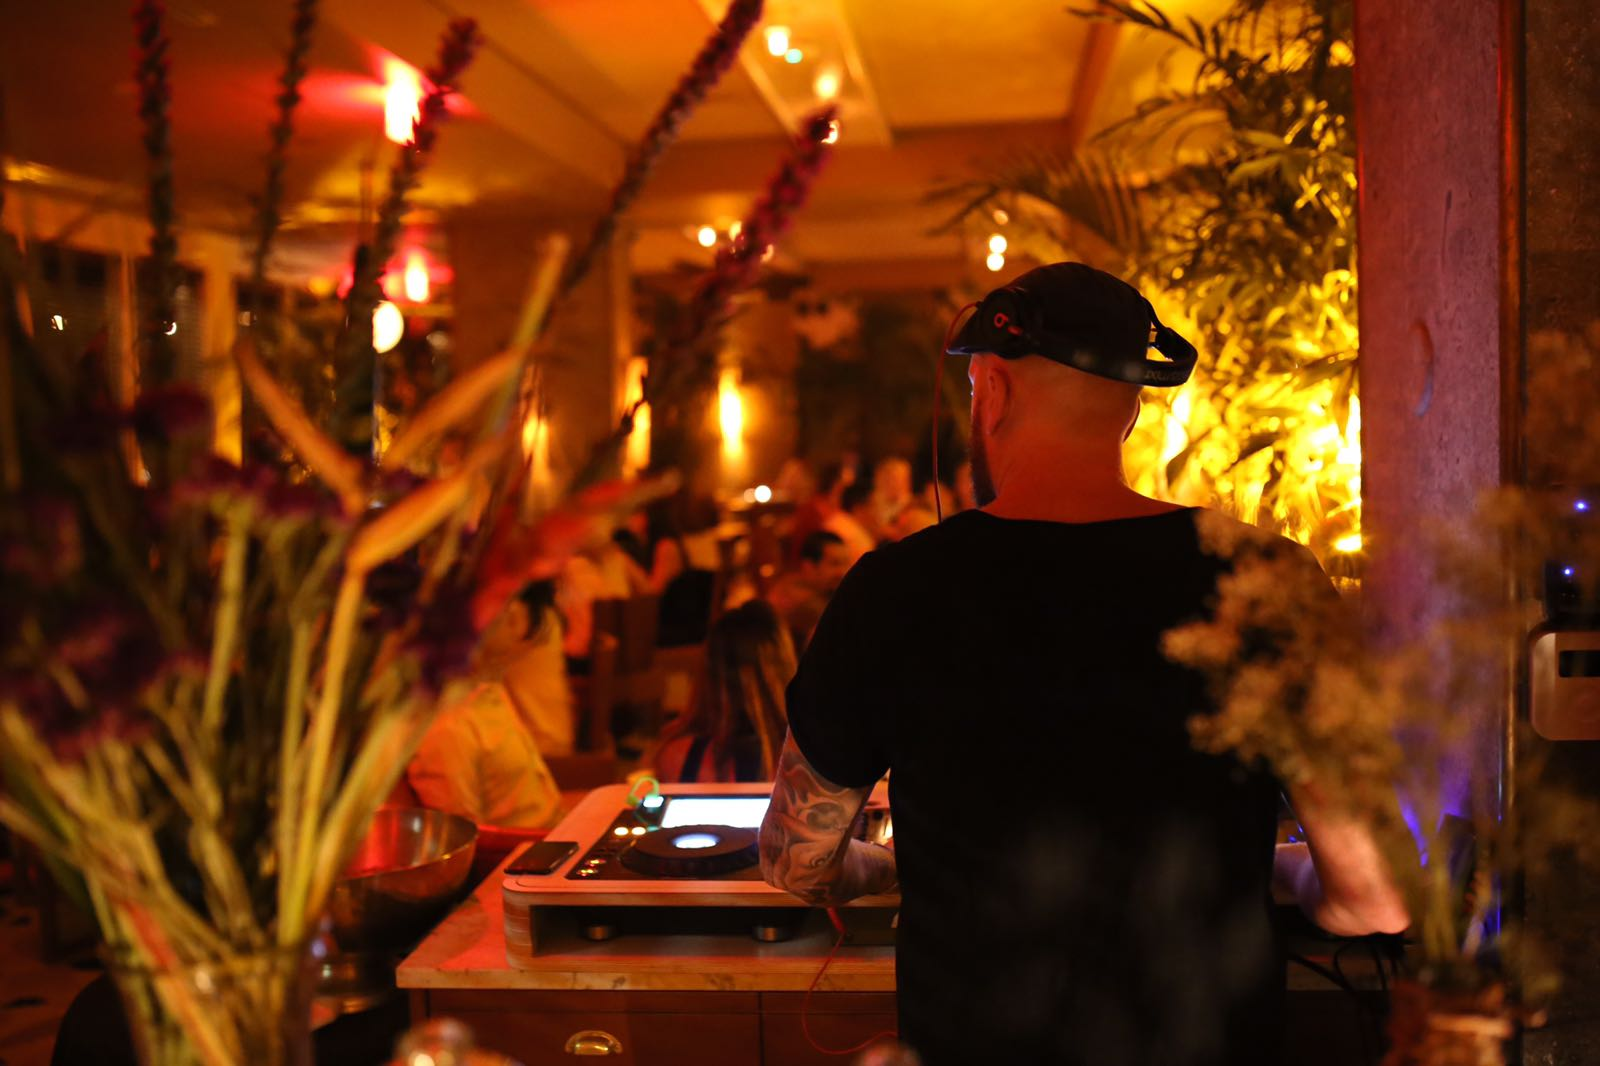 miami party, happy hour near me, sushi, late night, dj party